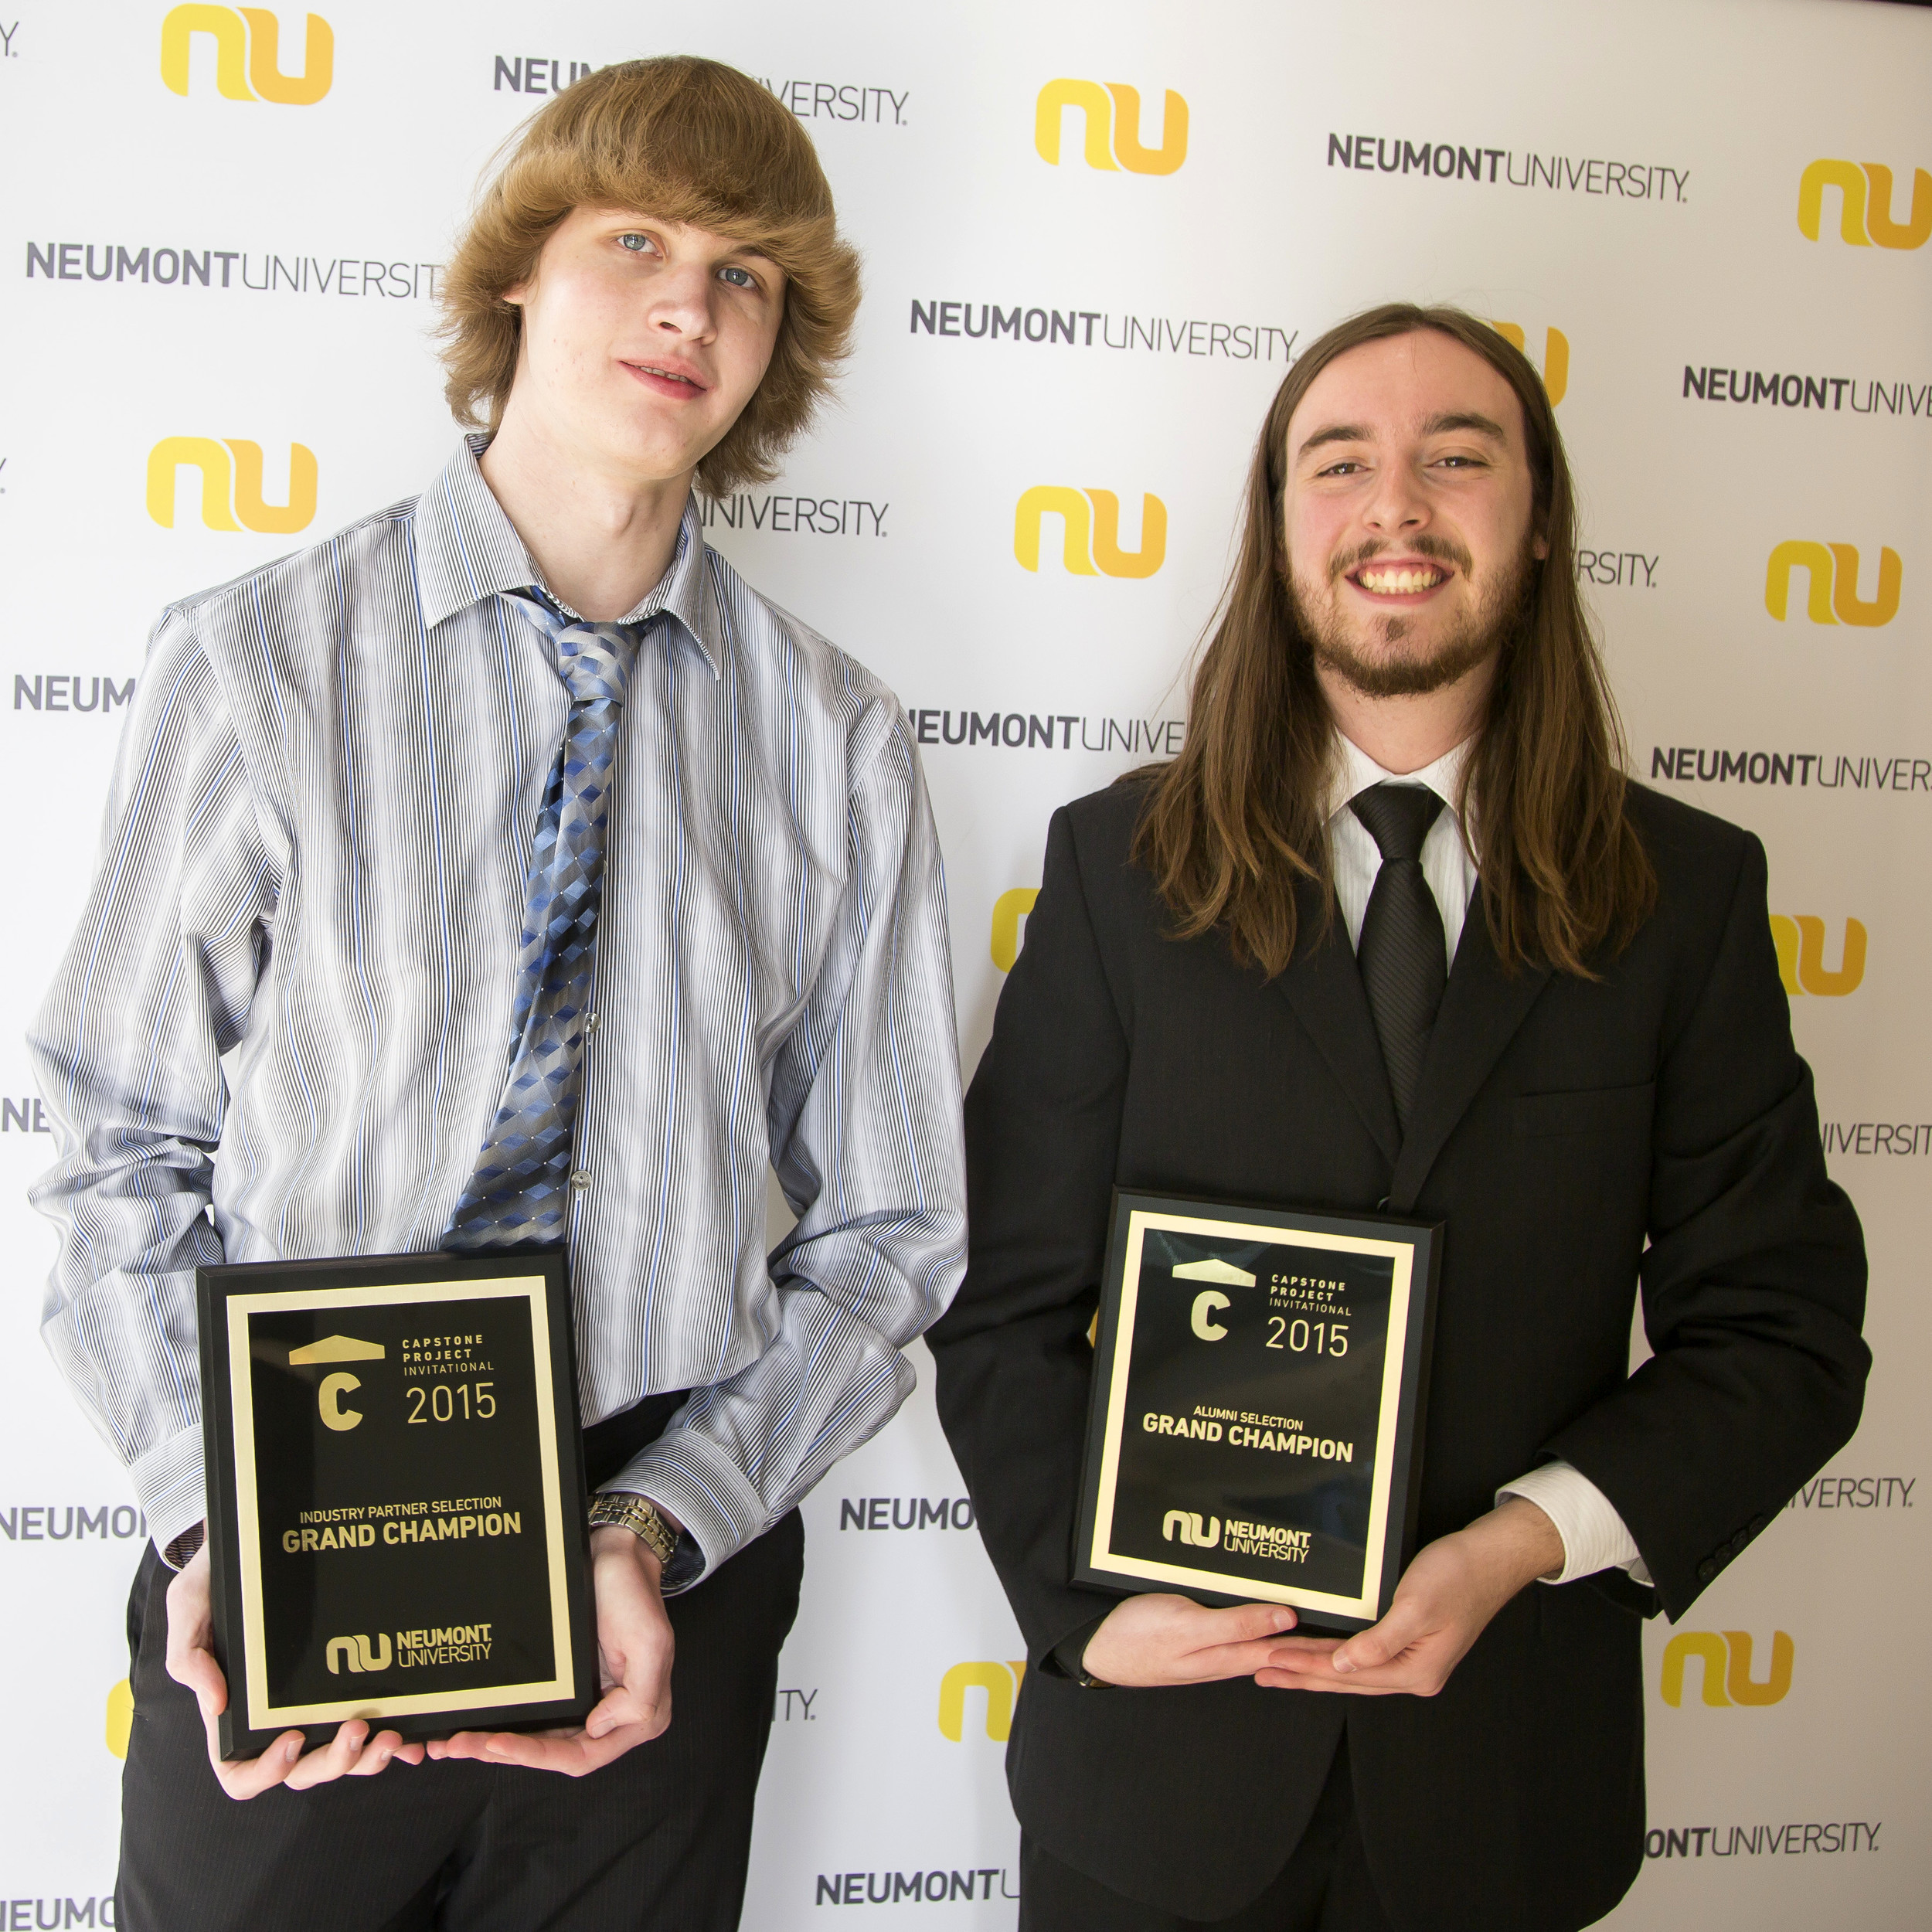 Scott Fries and Emerson Shaffer were name the Industry and Alumni Choice winners respectively for the Capstone Projects.